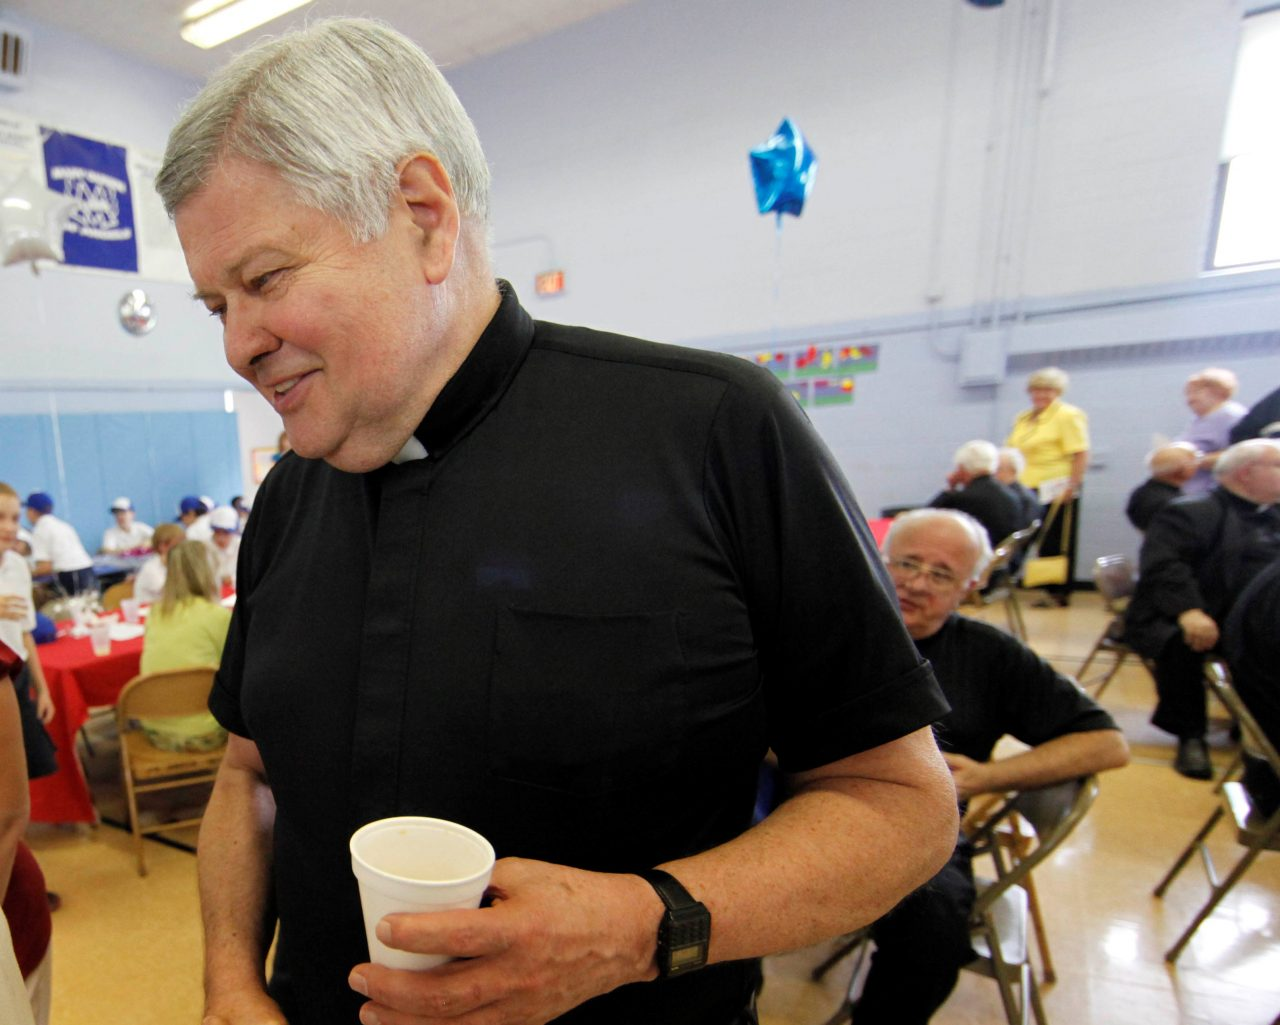 Priest investigated by DA identified, had prior accusation of abuse